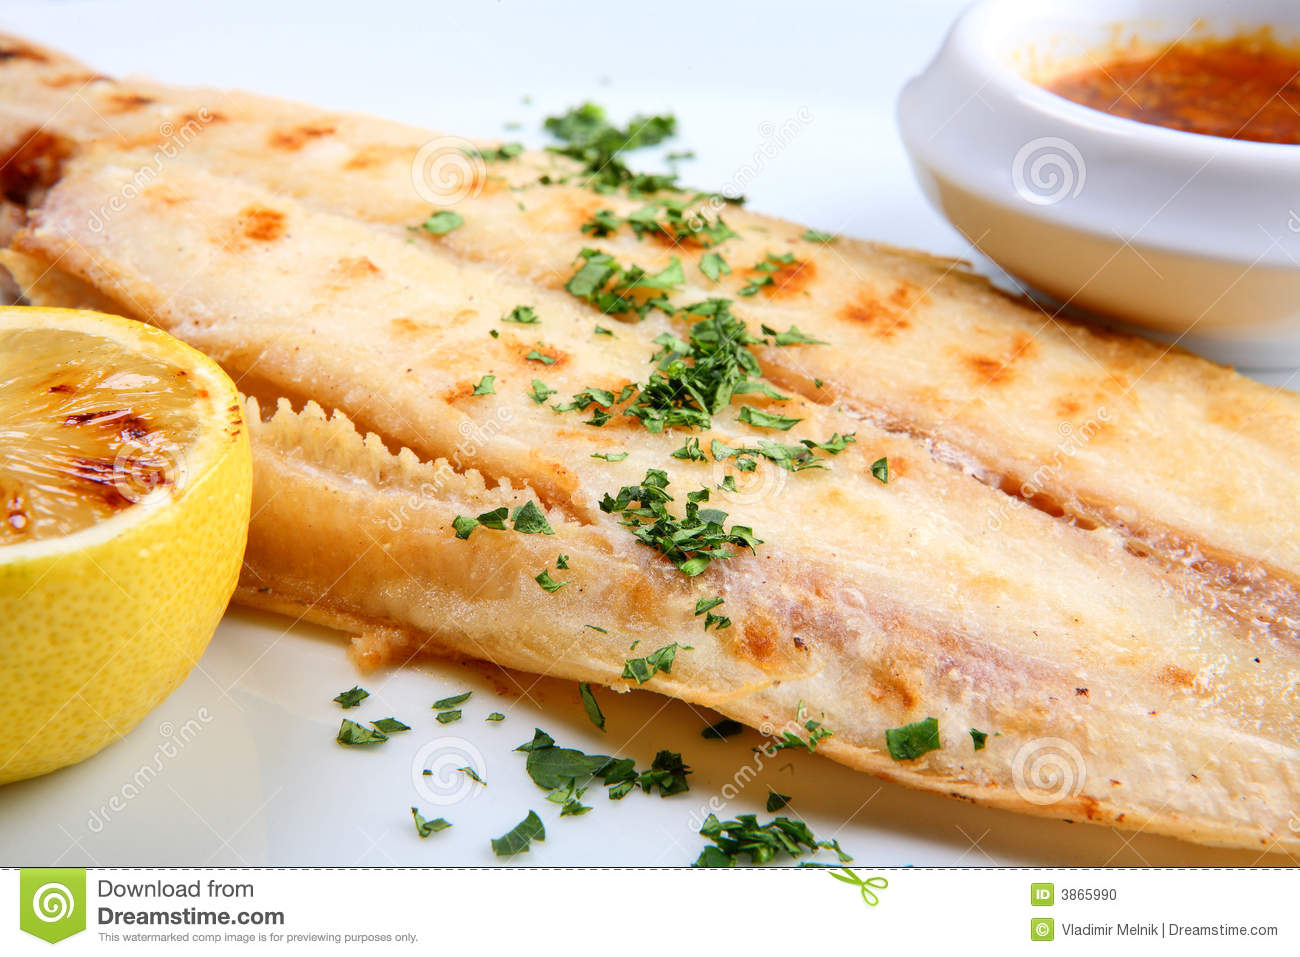 Grilled sole fish stock photo image of appetizing plate for Sole fish nutrition